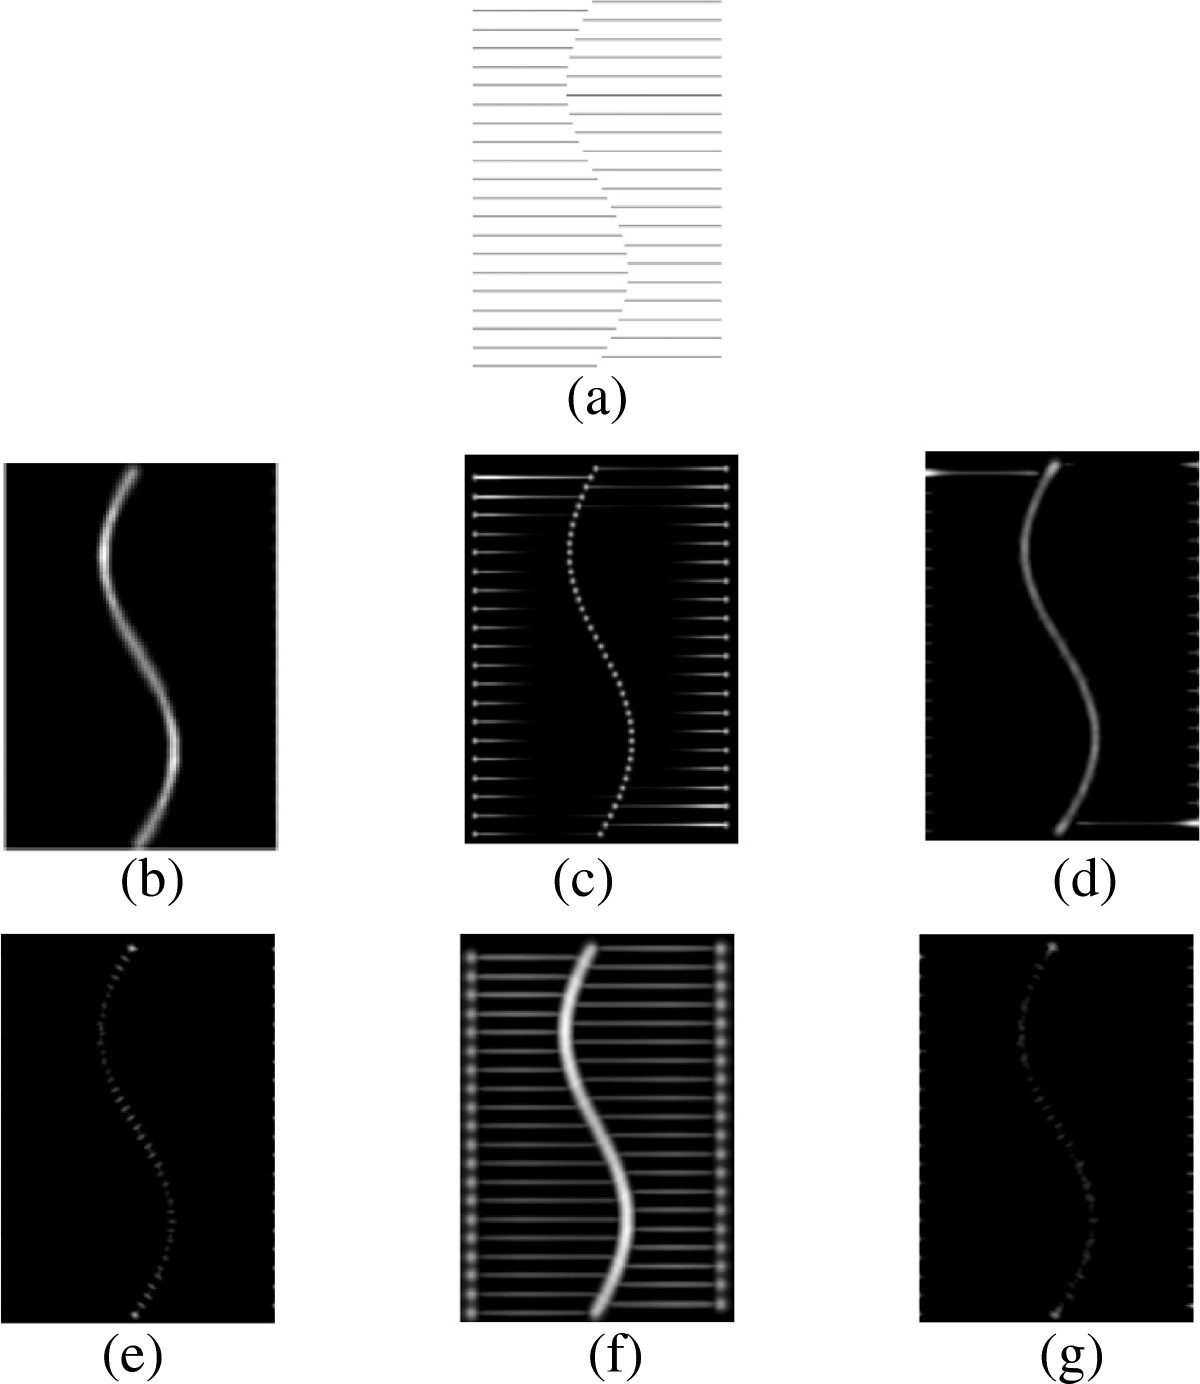 https://static-content.springer.com/image/art%3A10.1186%2F1471-2202-13-145/MediaObjects/12868_2012_Article_2859_Fig16_HTML.jpg